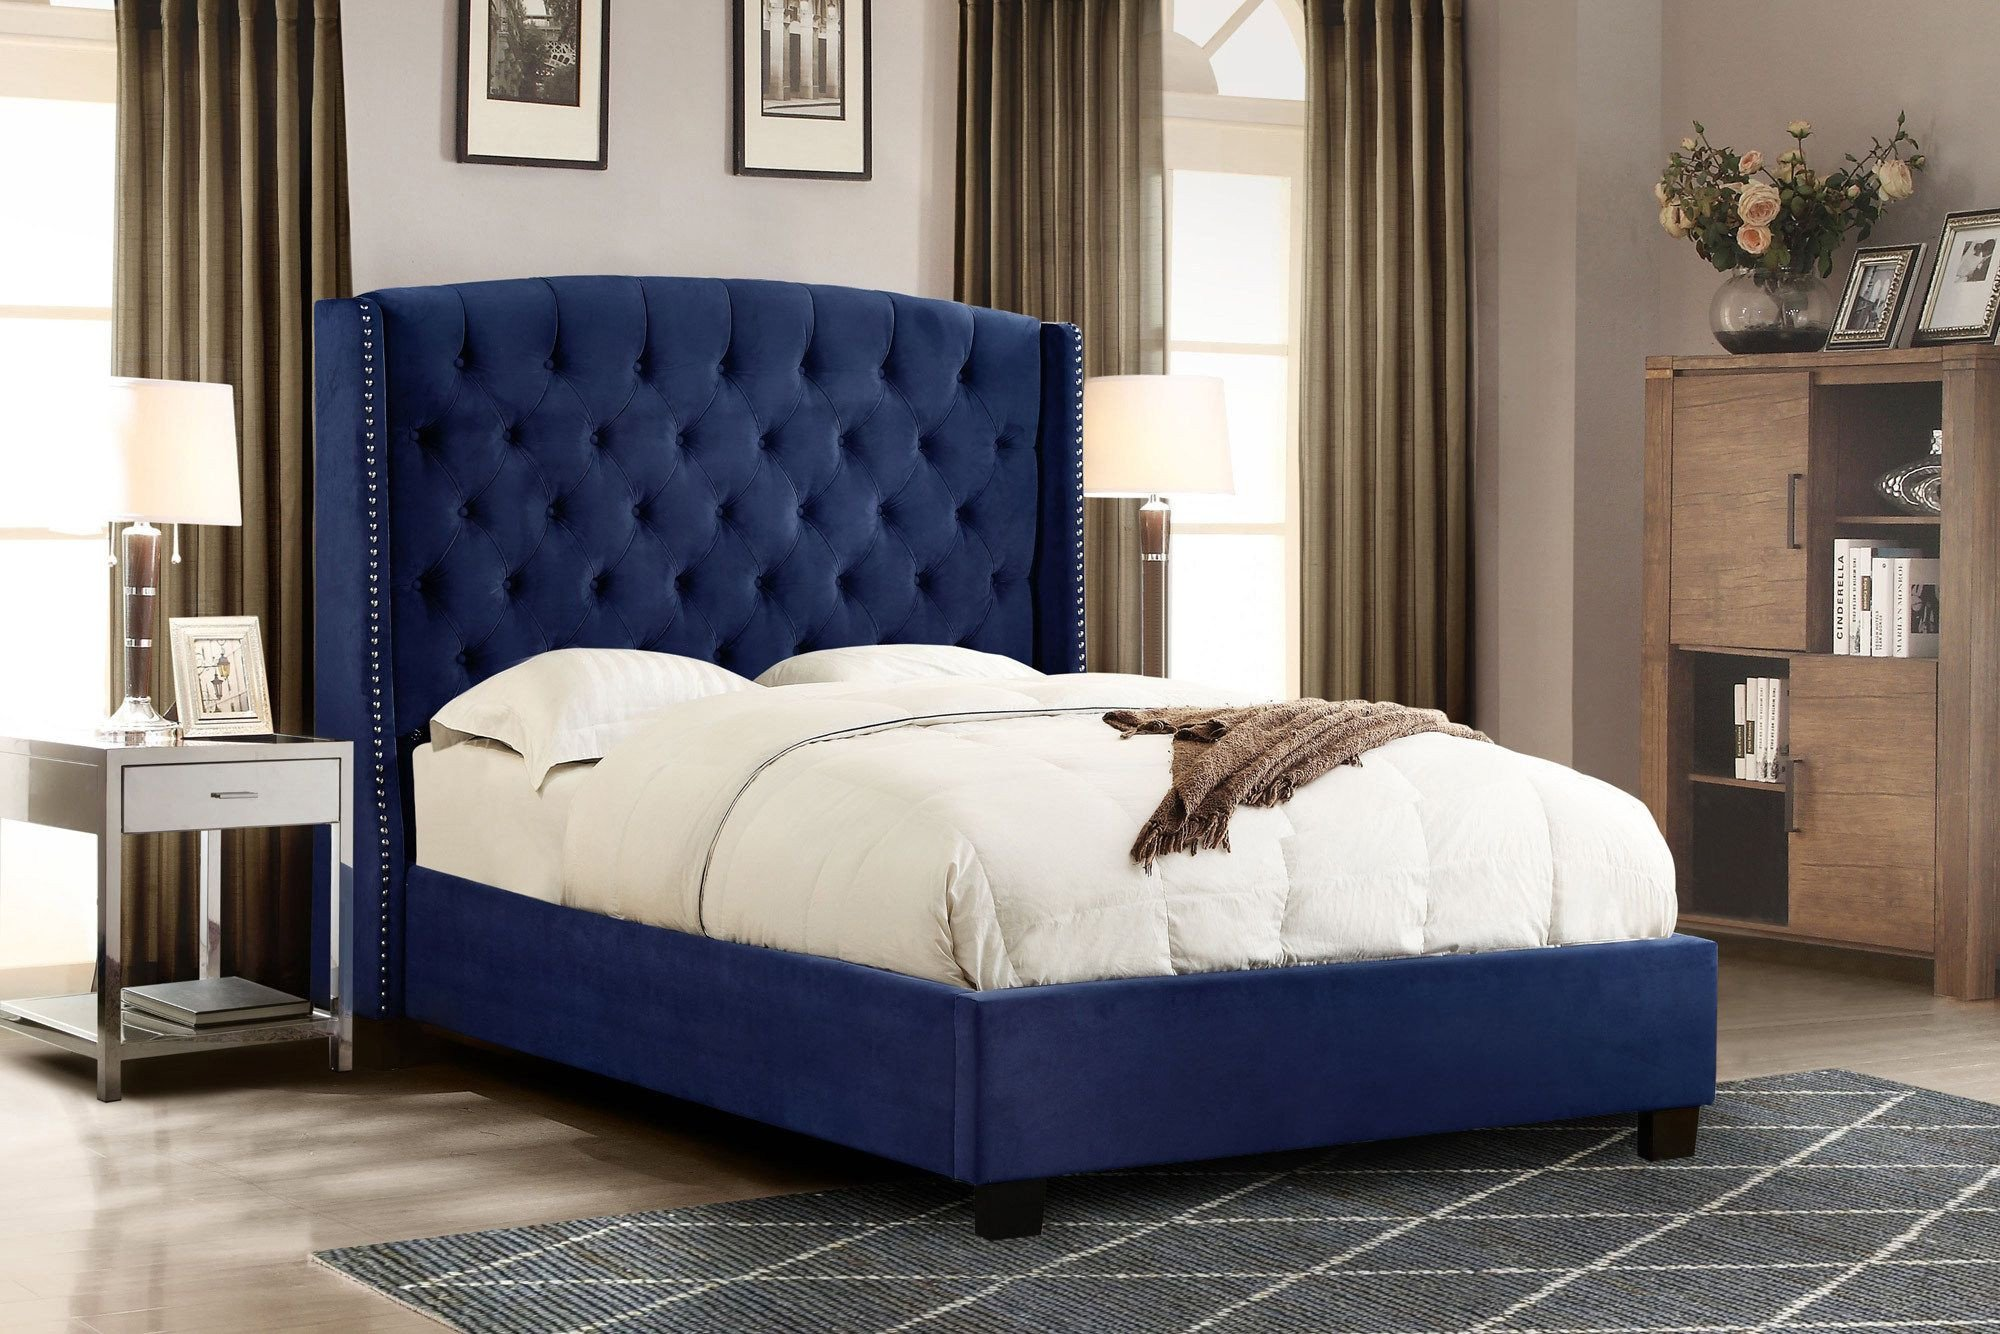 Blue Bedroom Furniture Set Unique 189 Best Tufted Headboards & Beds Images